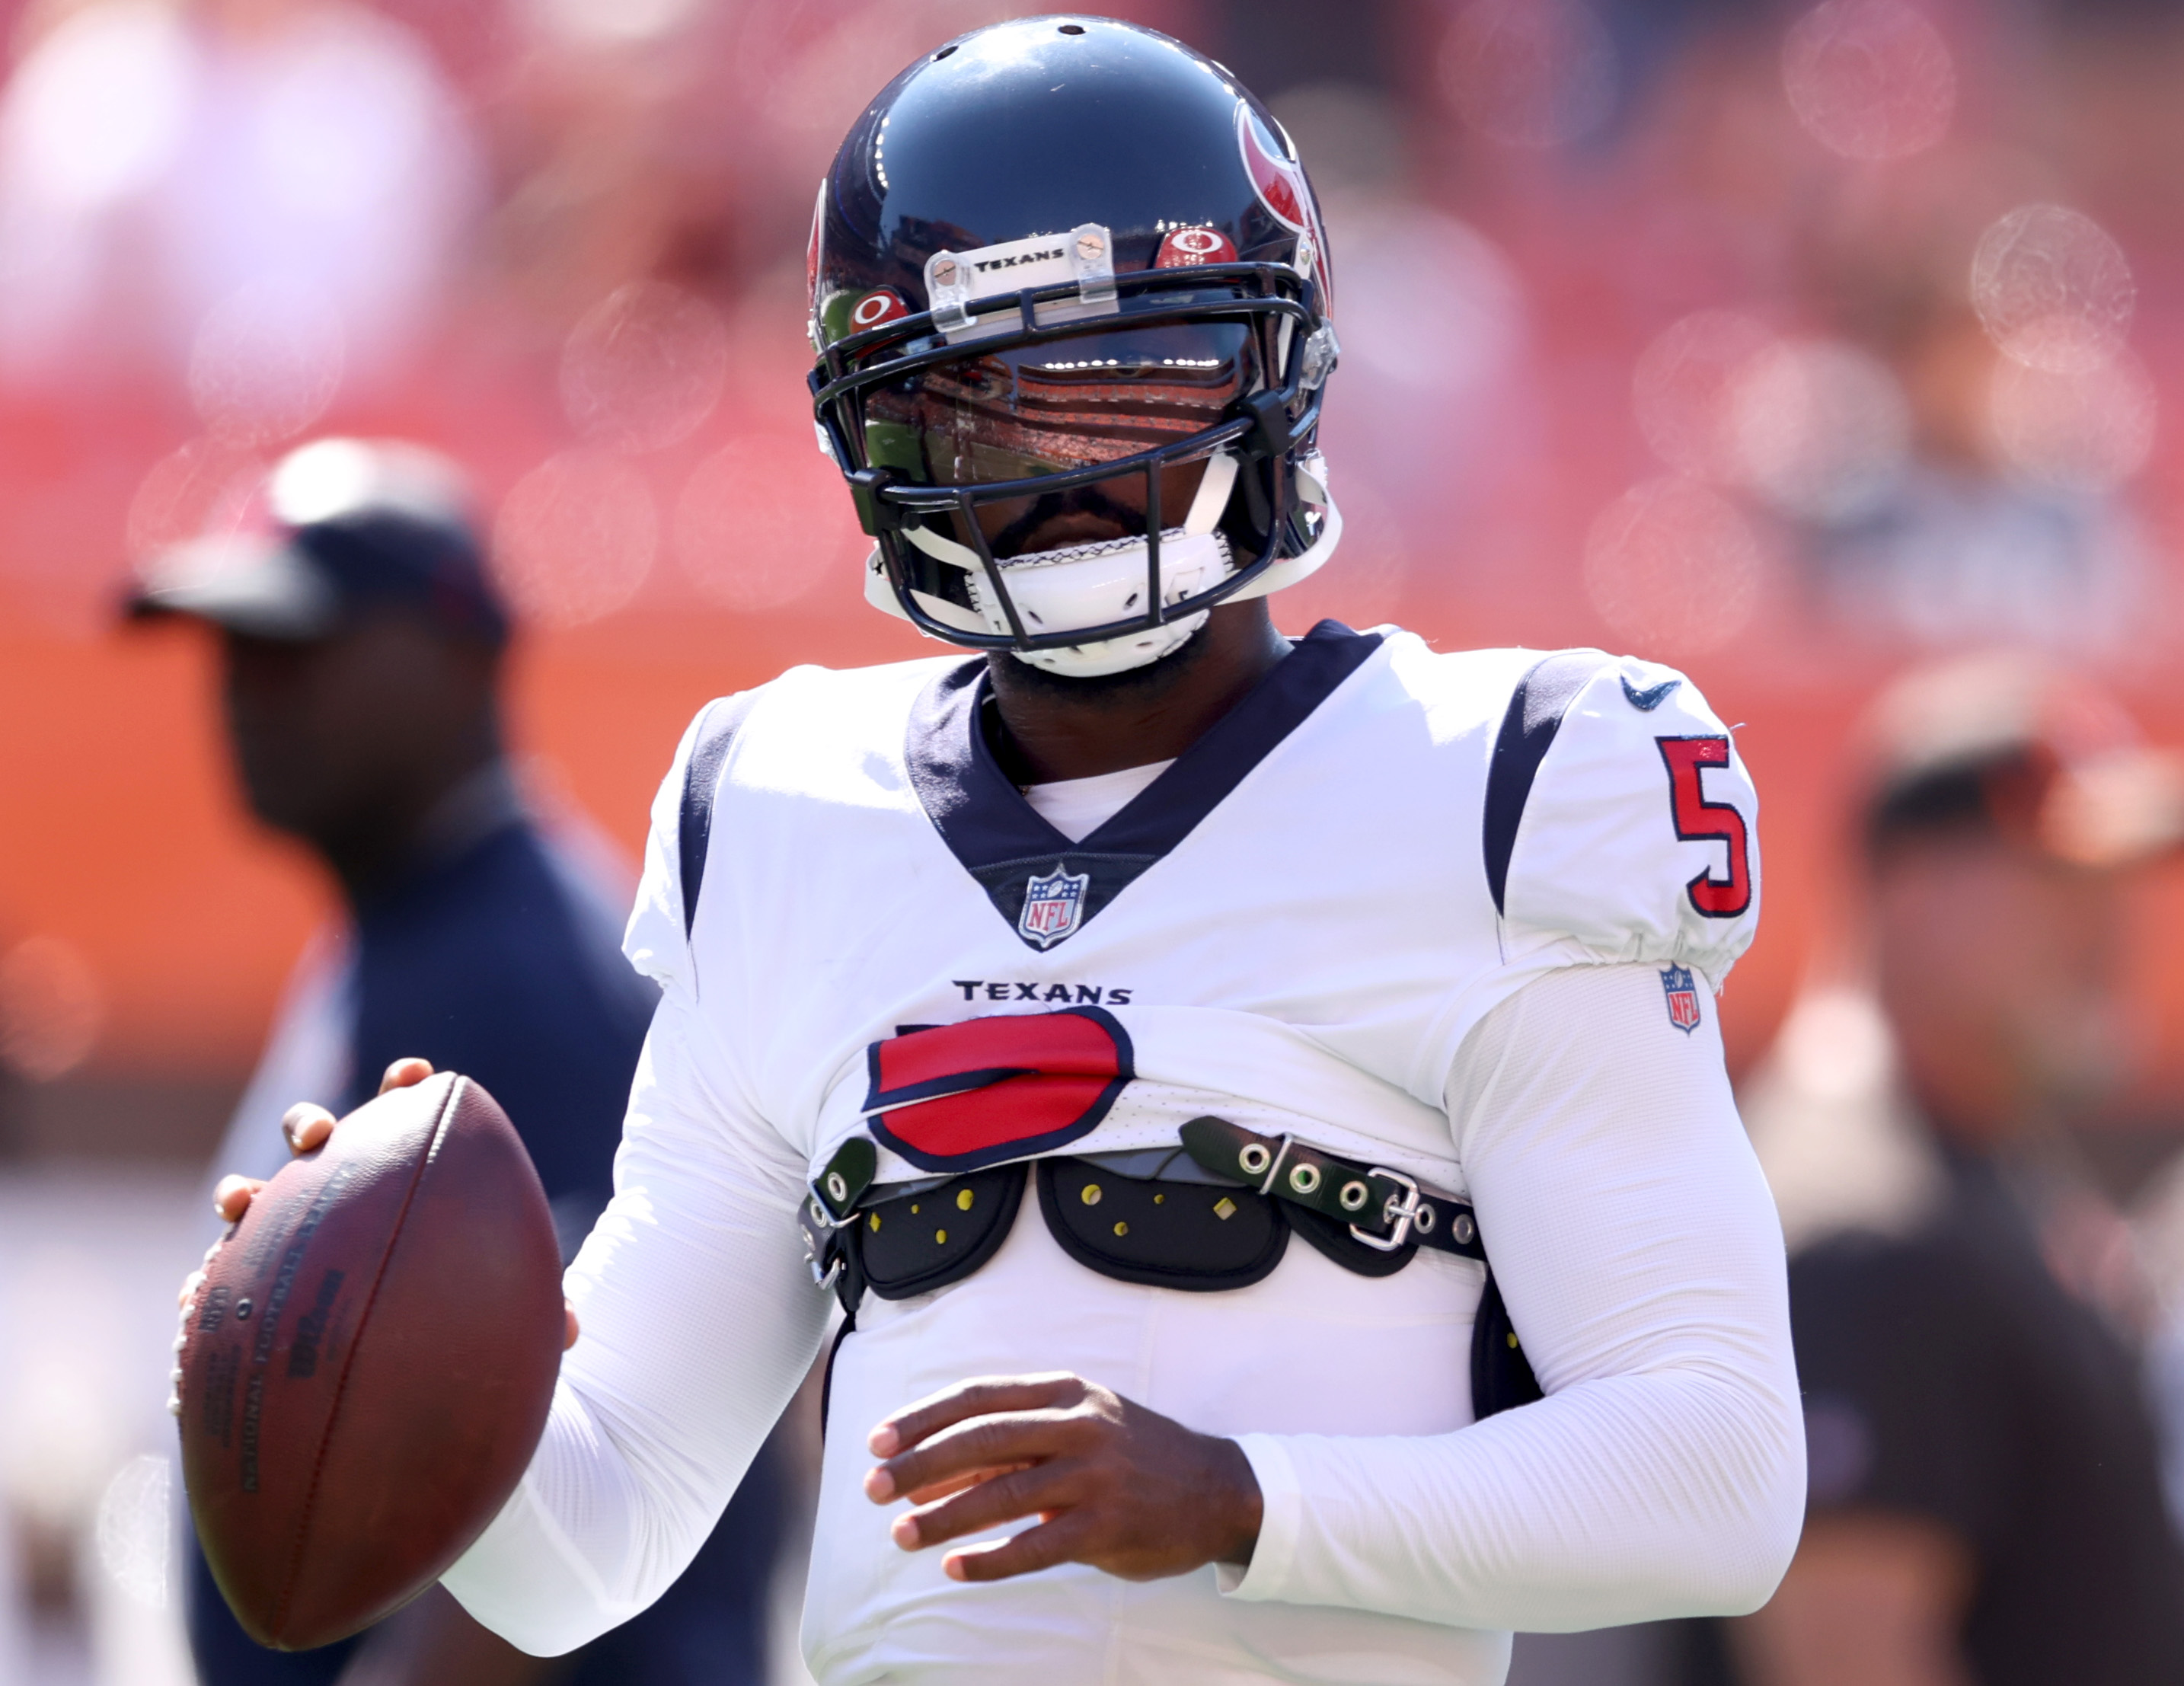 Quarterback Tyrod Taylor #5 of the Houston Texans before the game against the Cleveland Browns at FirstEnergy Stadium on September 19, 2021 in Cleveland, Ohio.